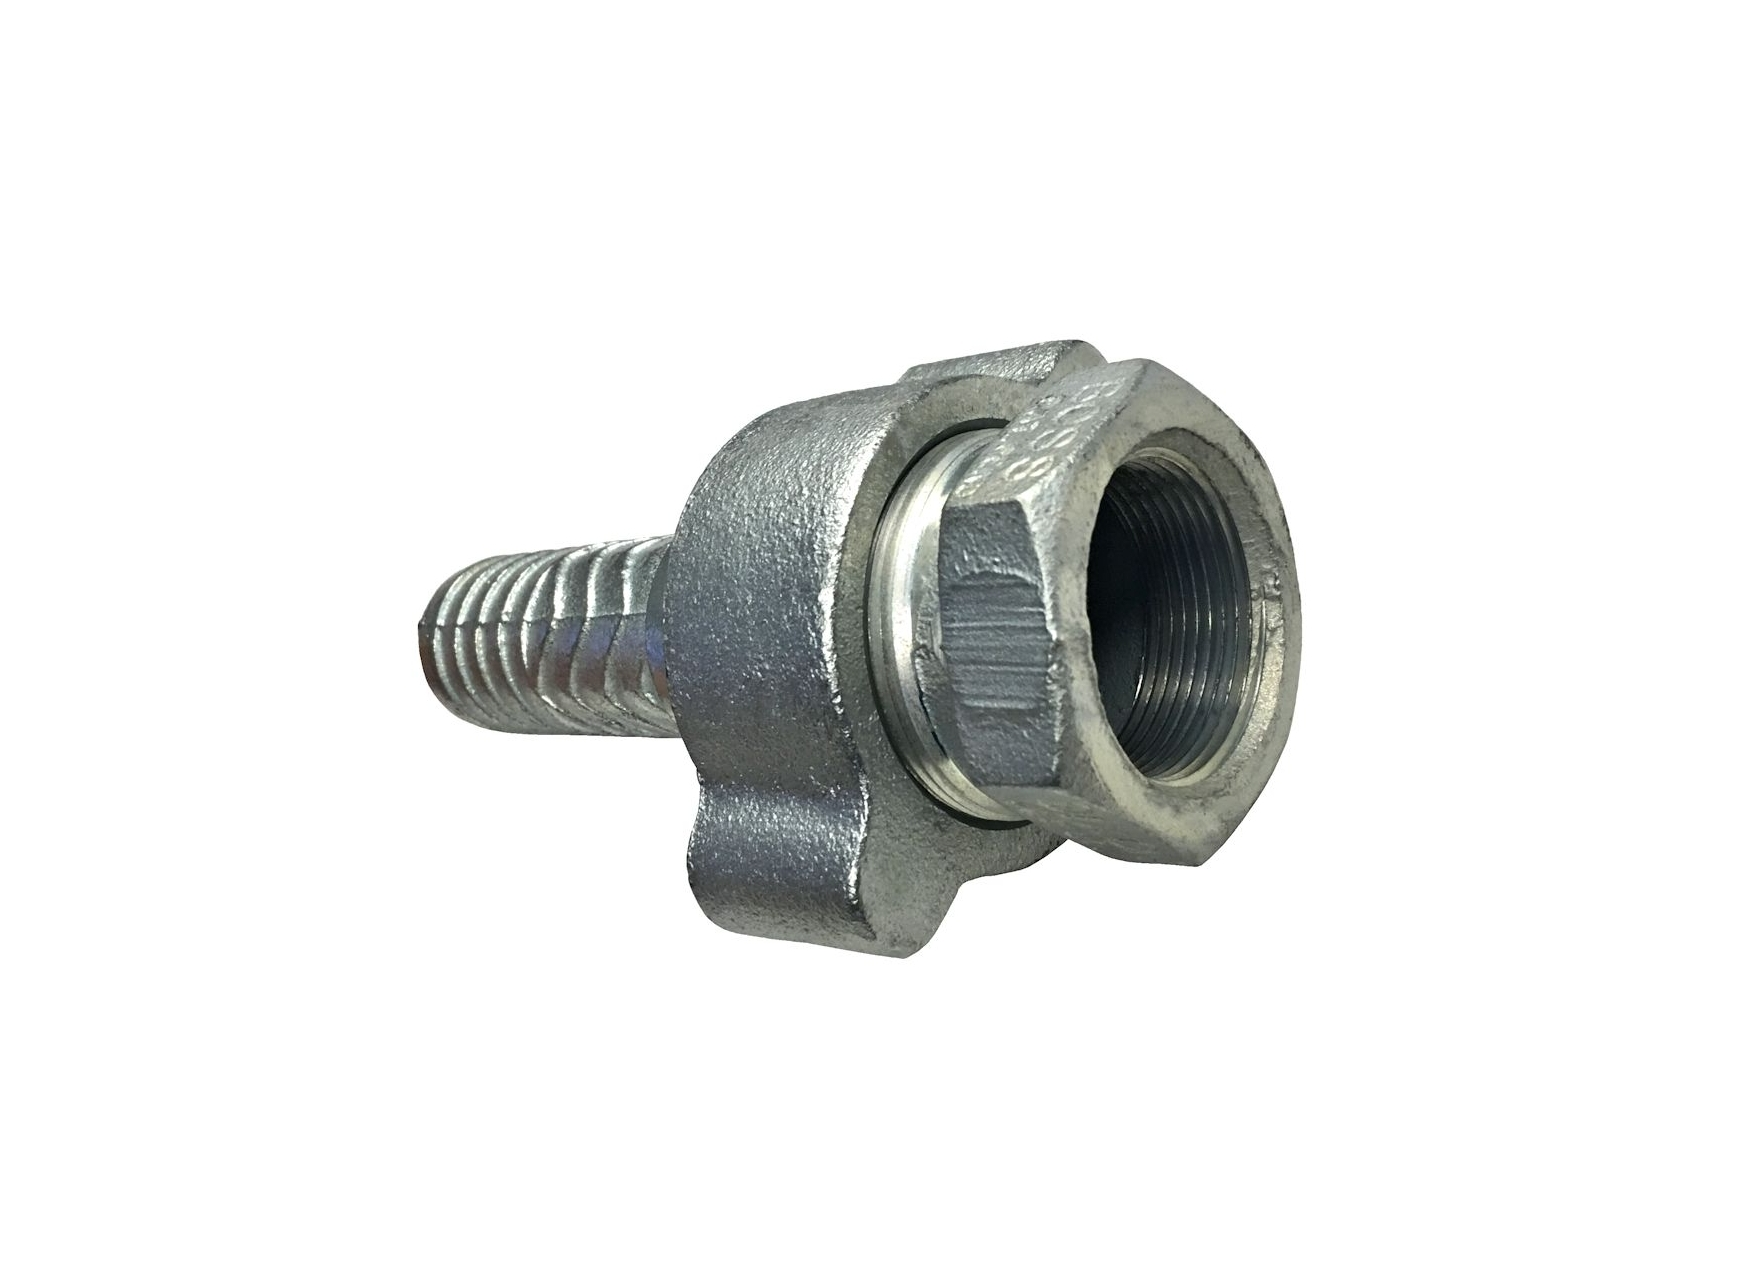 Ground joint coupling product page accessible by clicking on the image